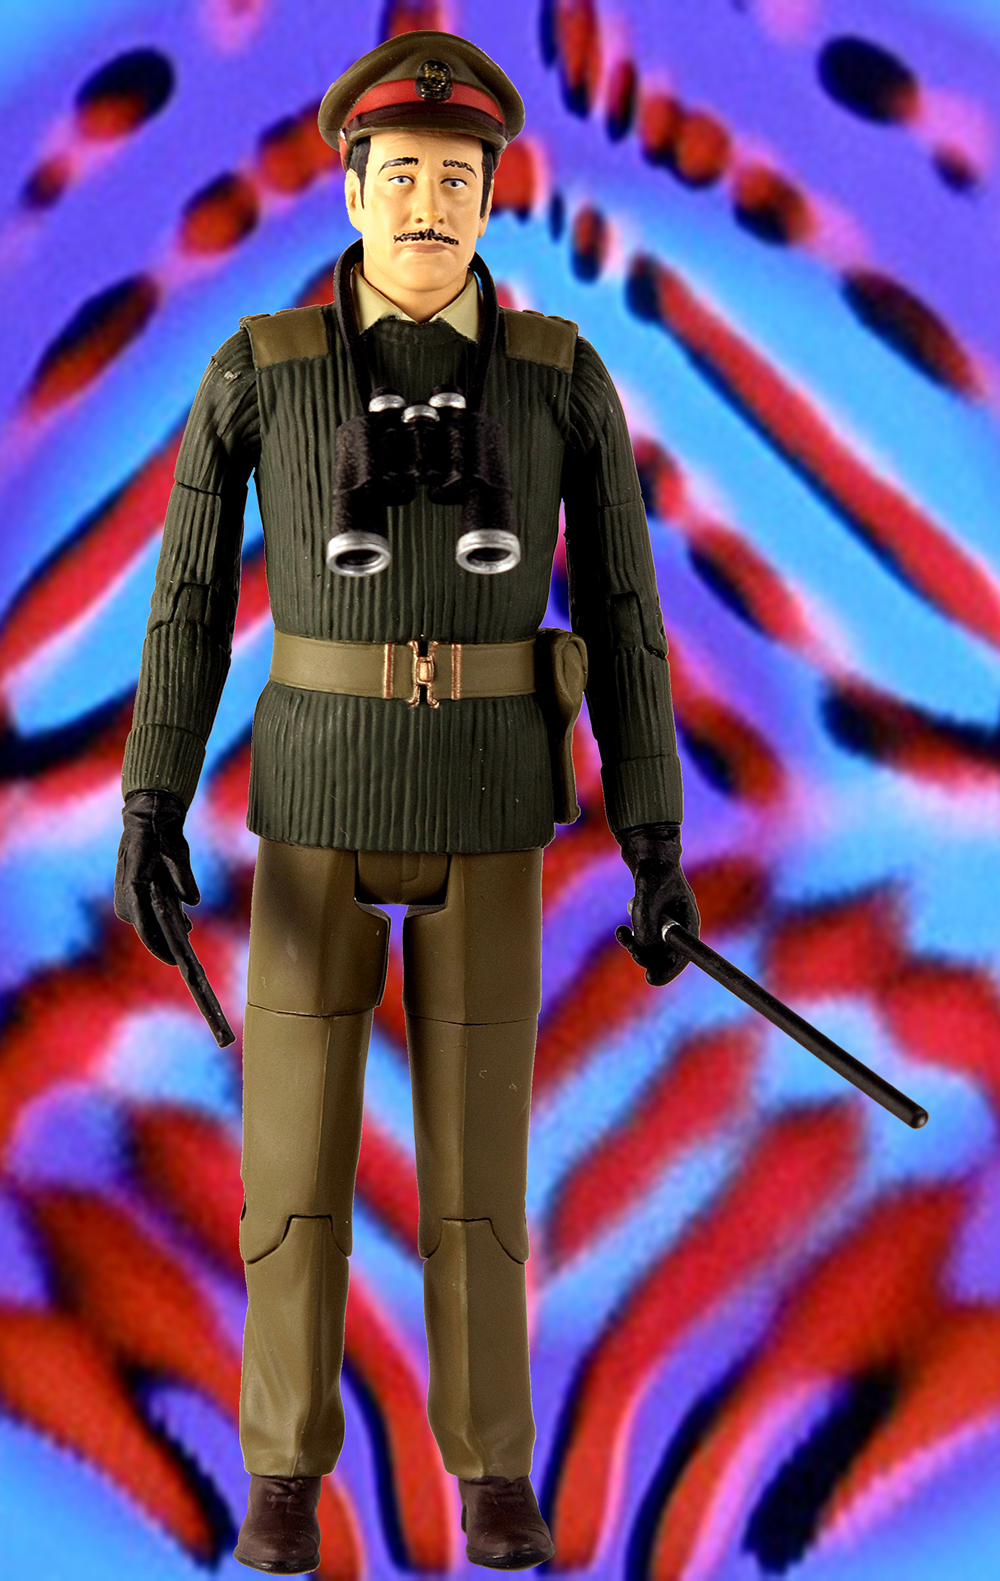 The Brigadier from The Daemons Collectors Set